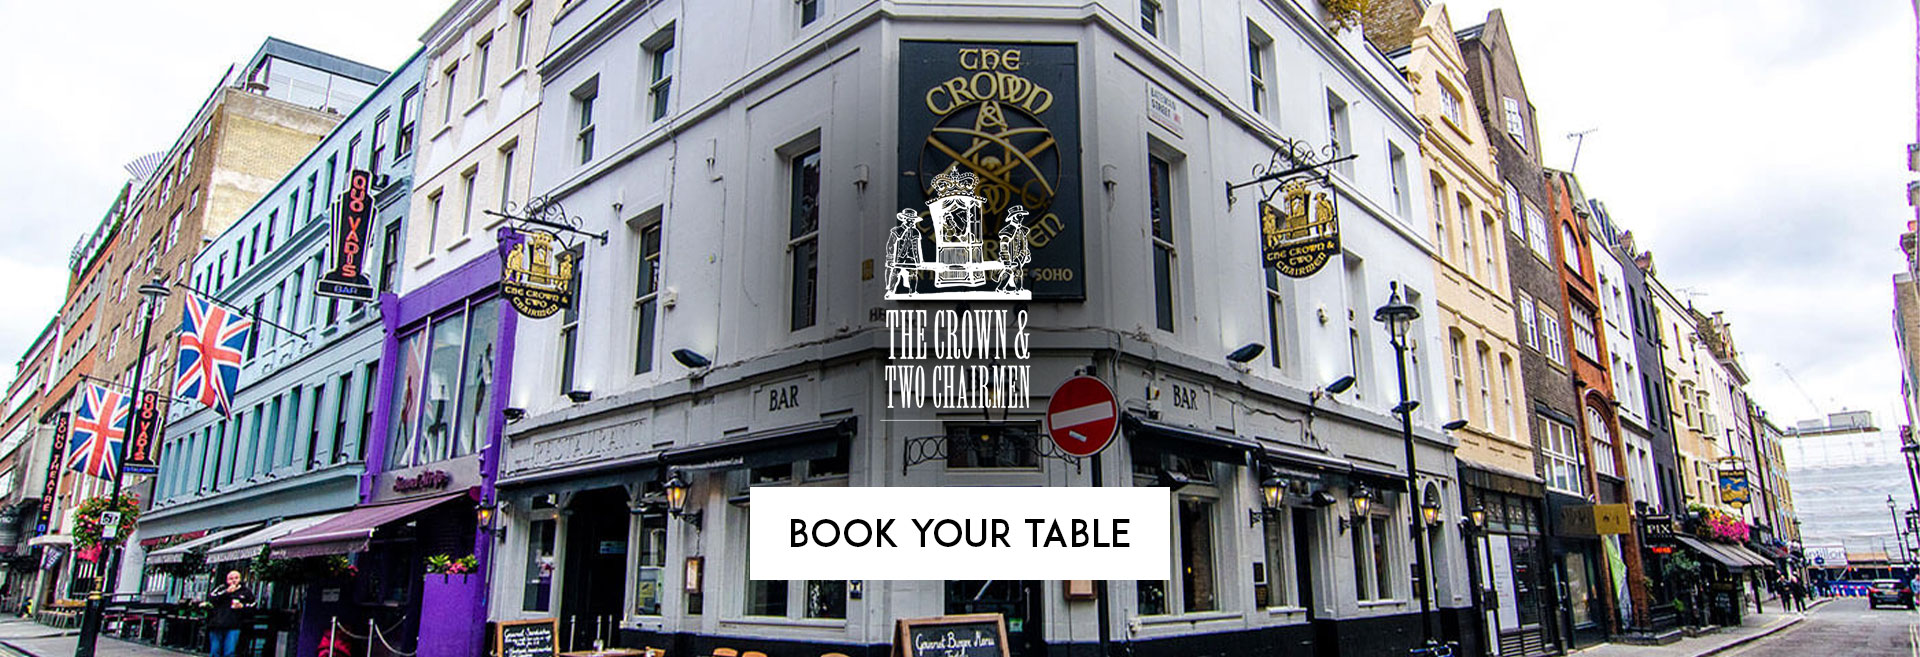 Book Your Table The Crown & Two Chairmen